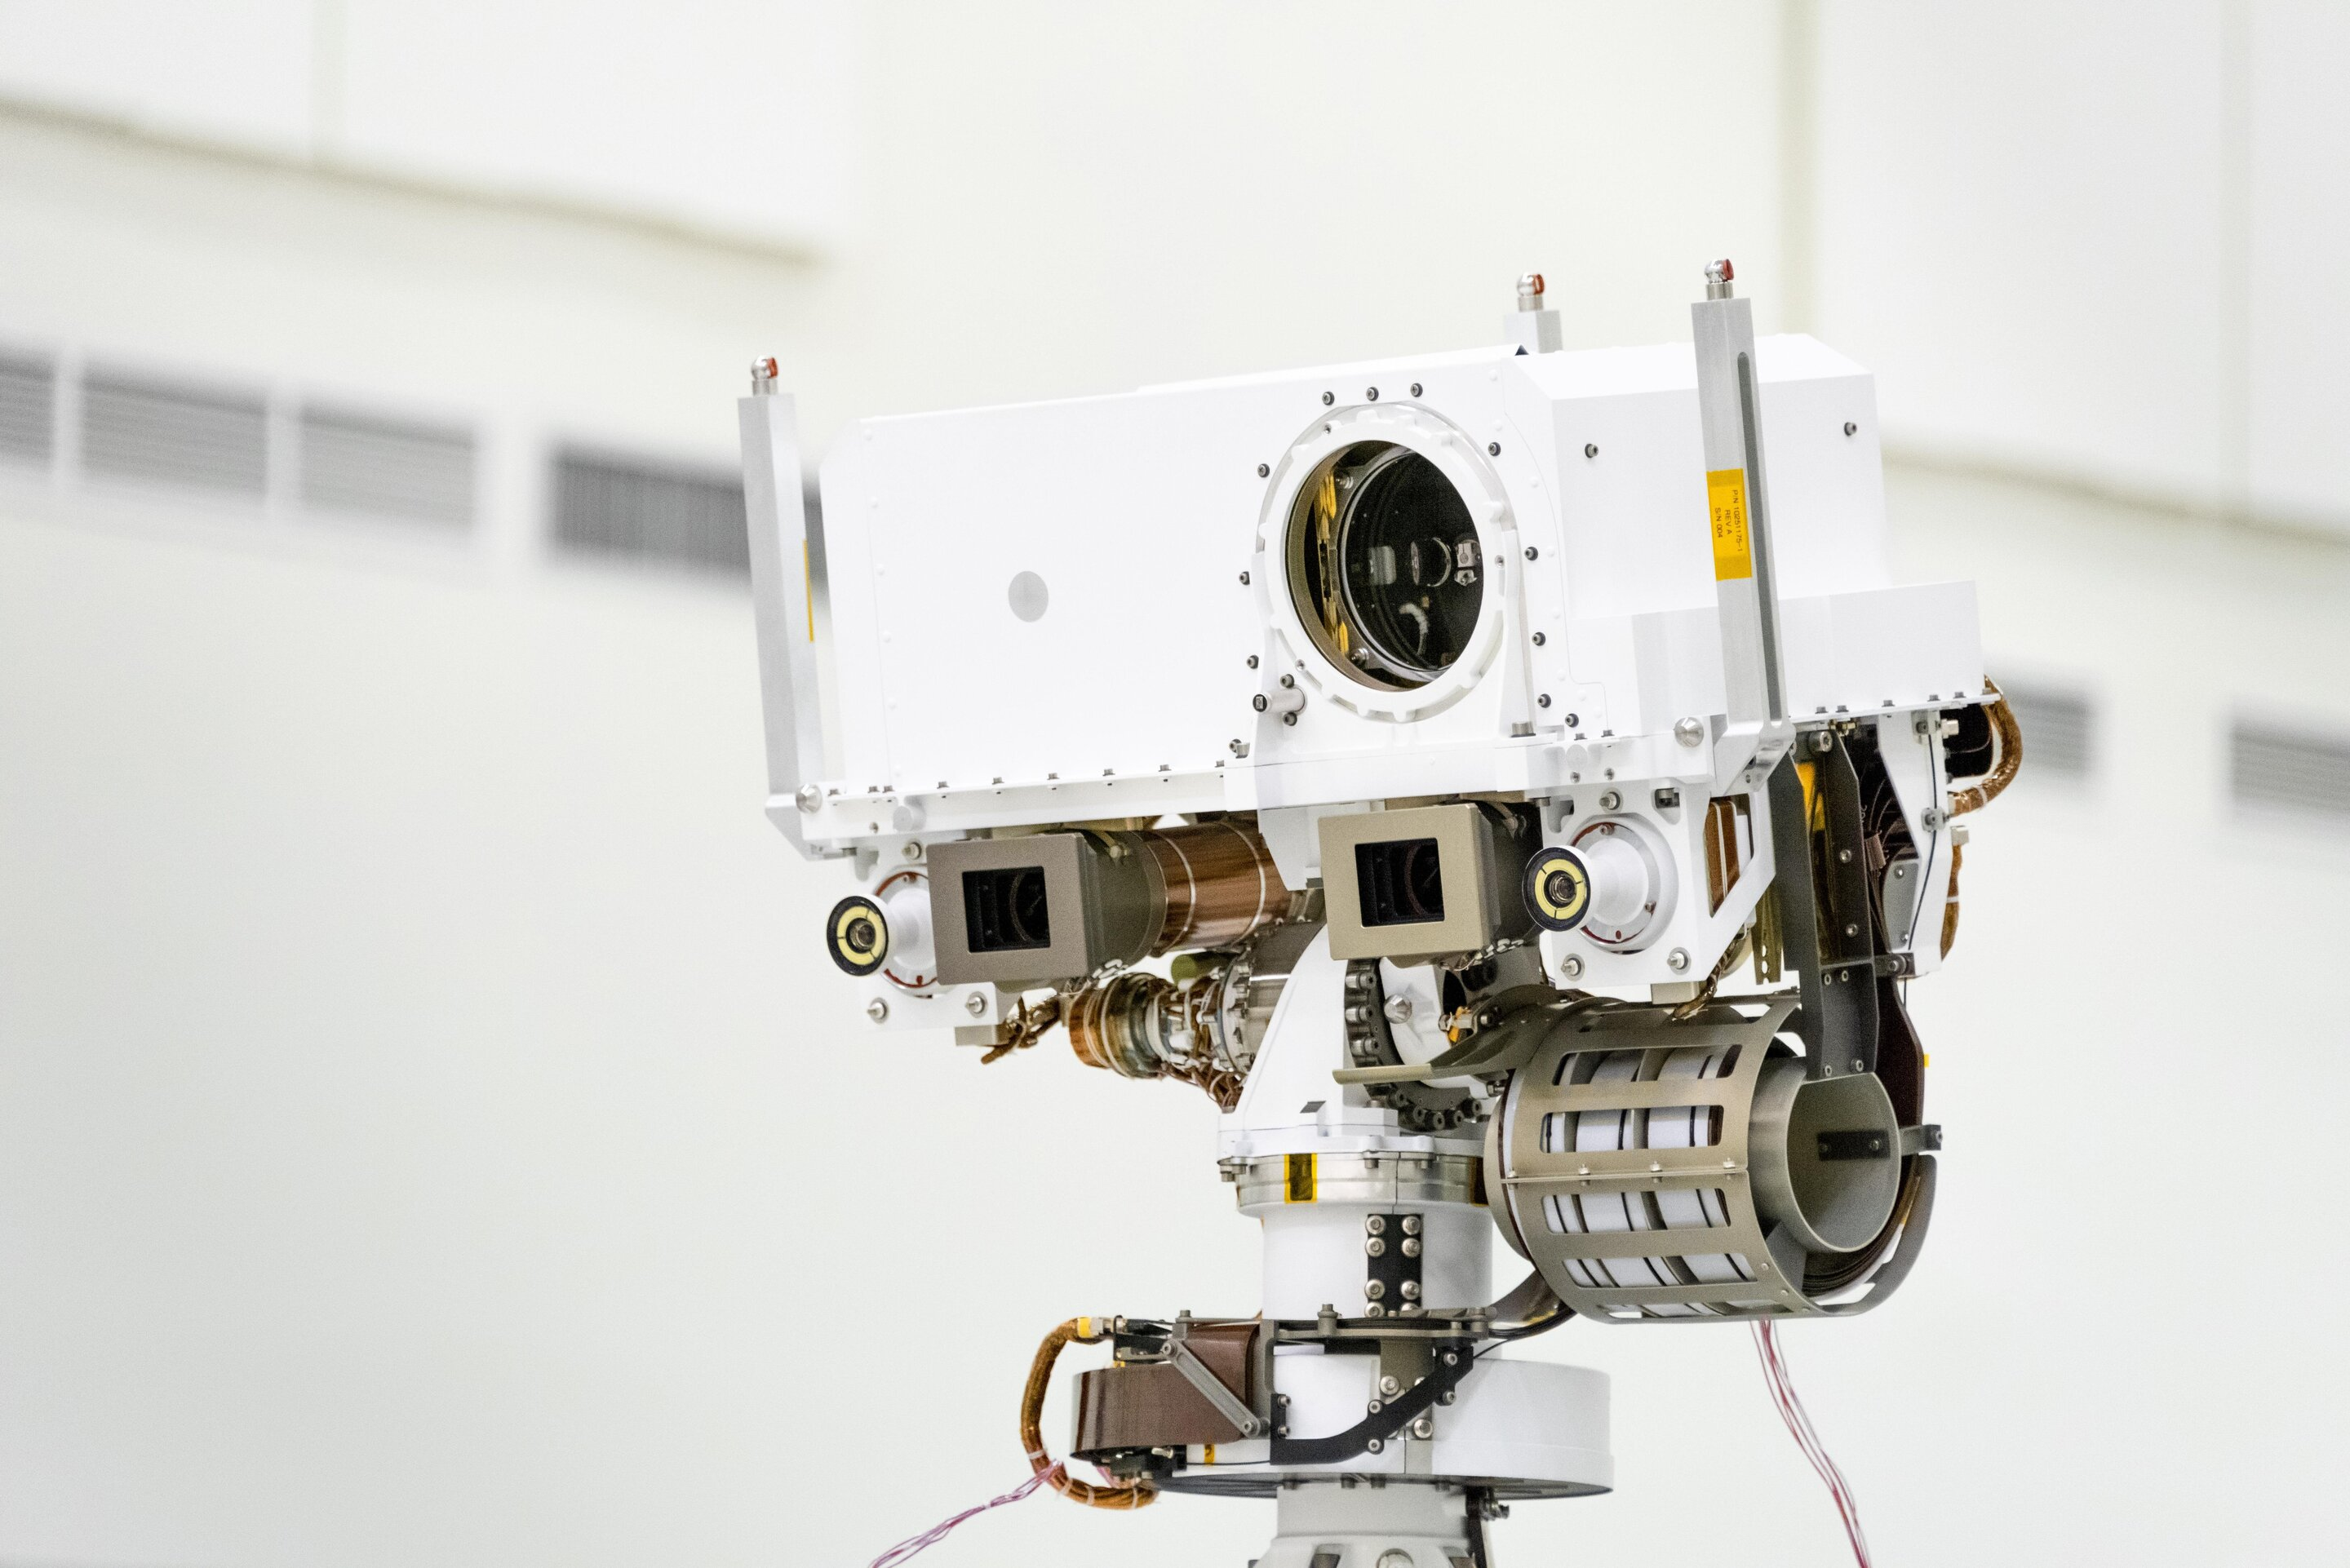 NASA's Perseverance rover will look at Mars through these eyes